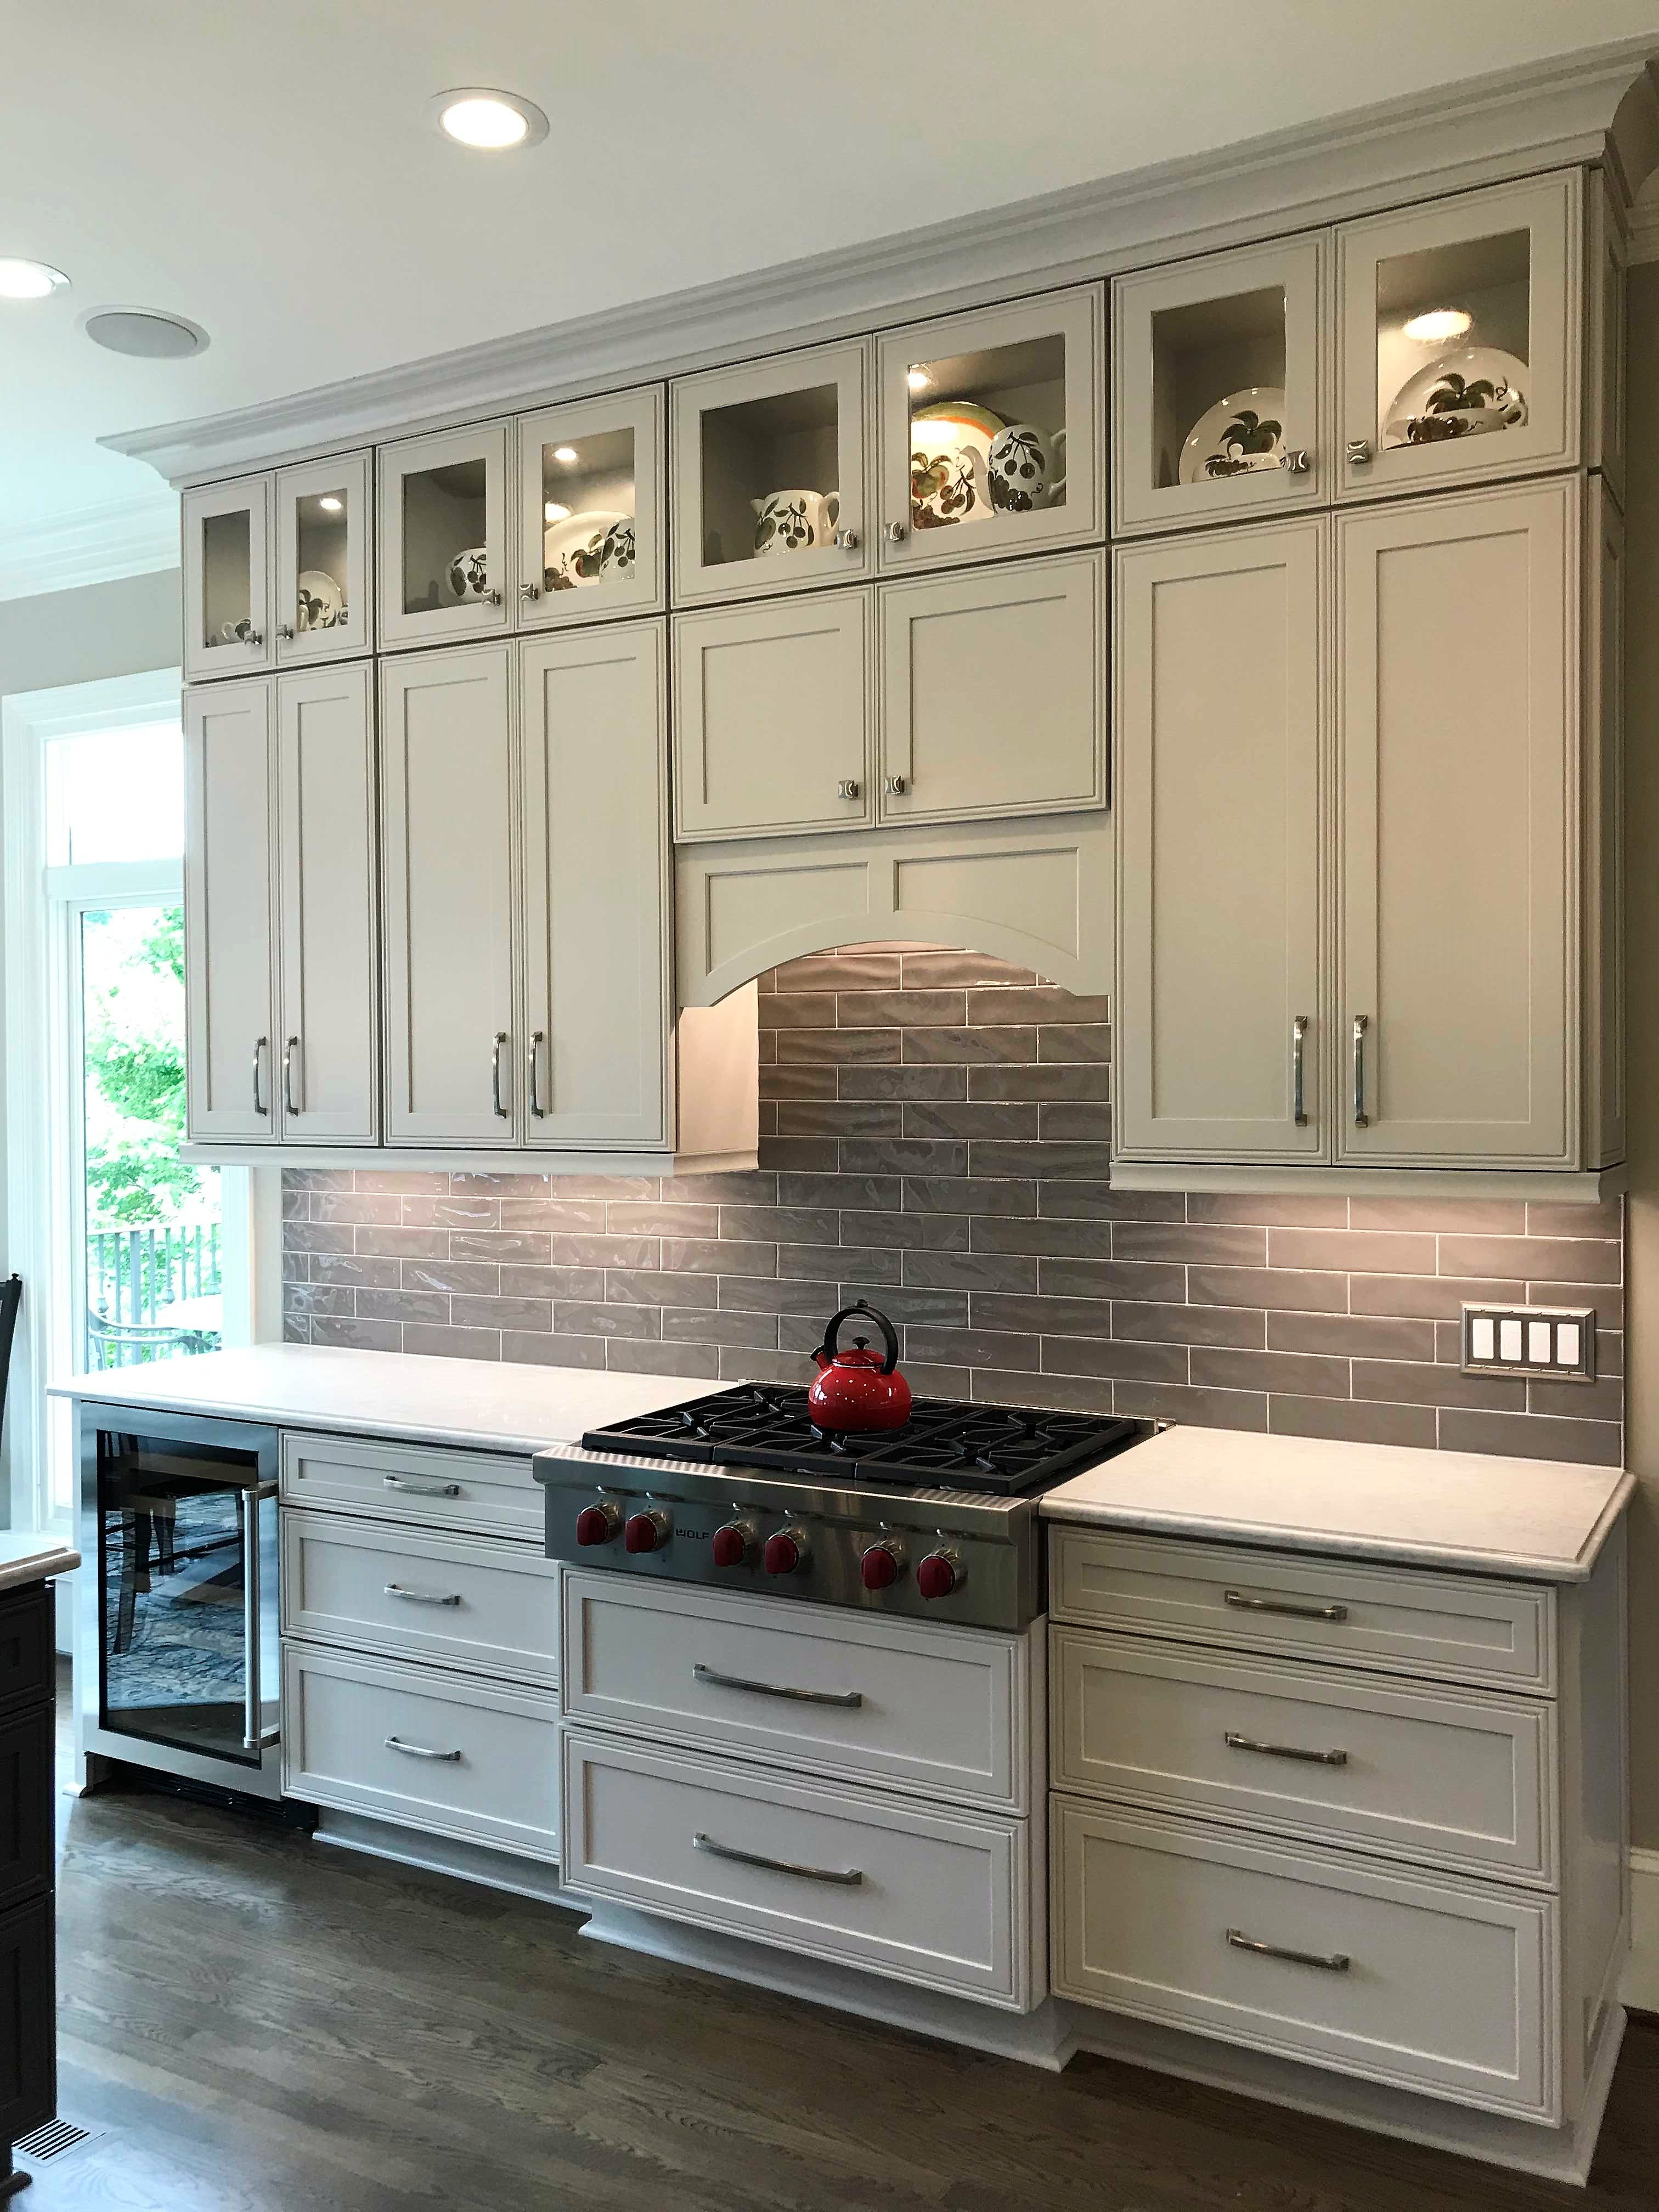 Sherwin Wiliams Agreeable Gray and Peppercorn Painted